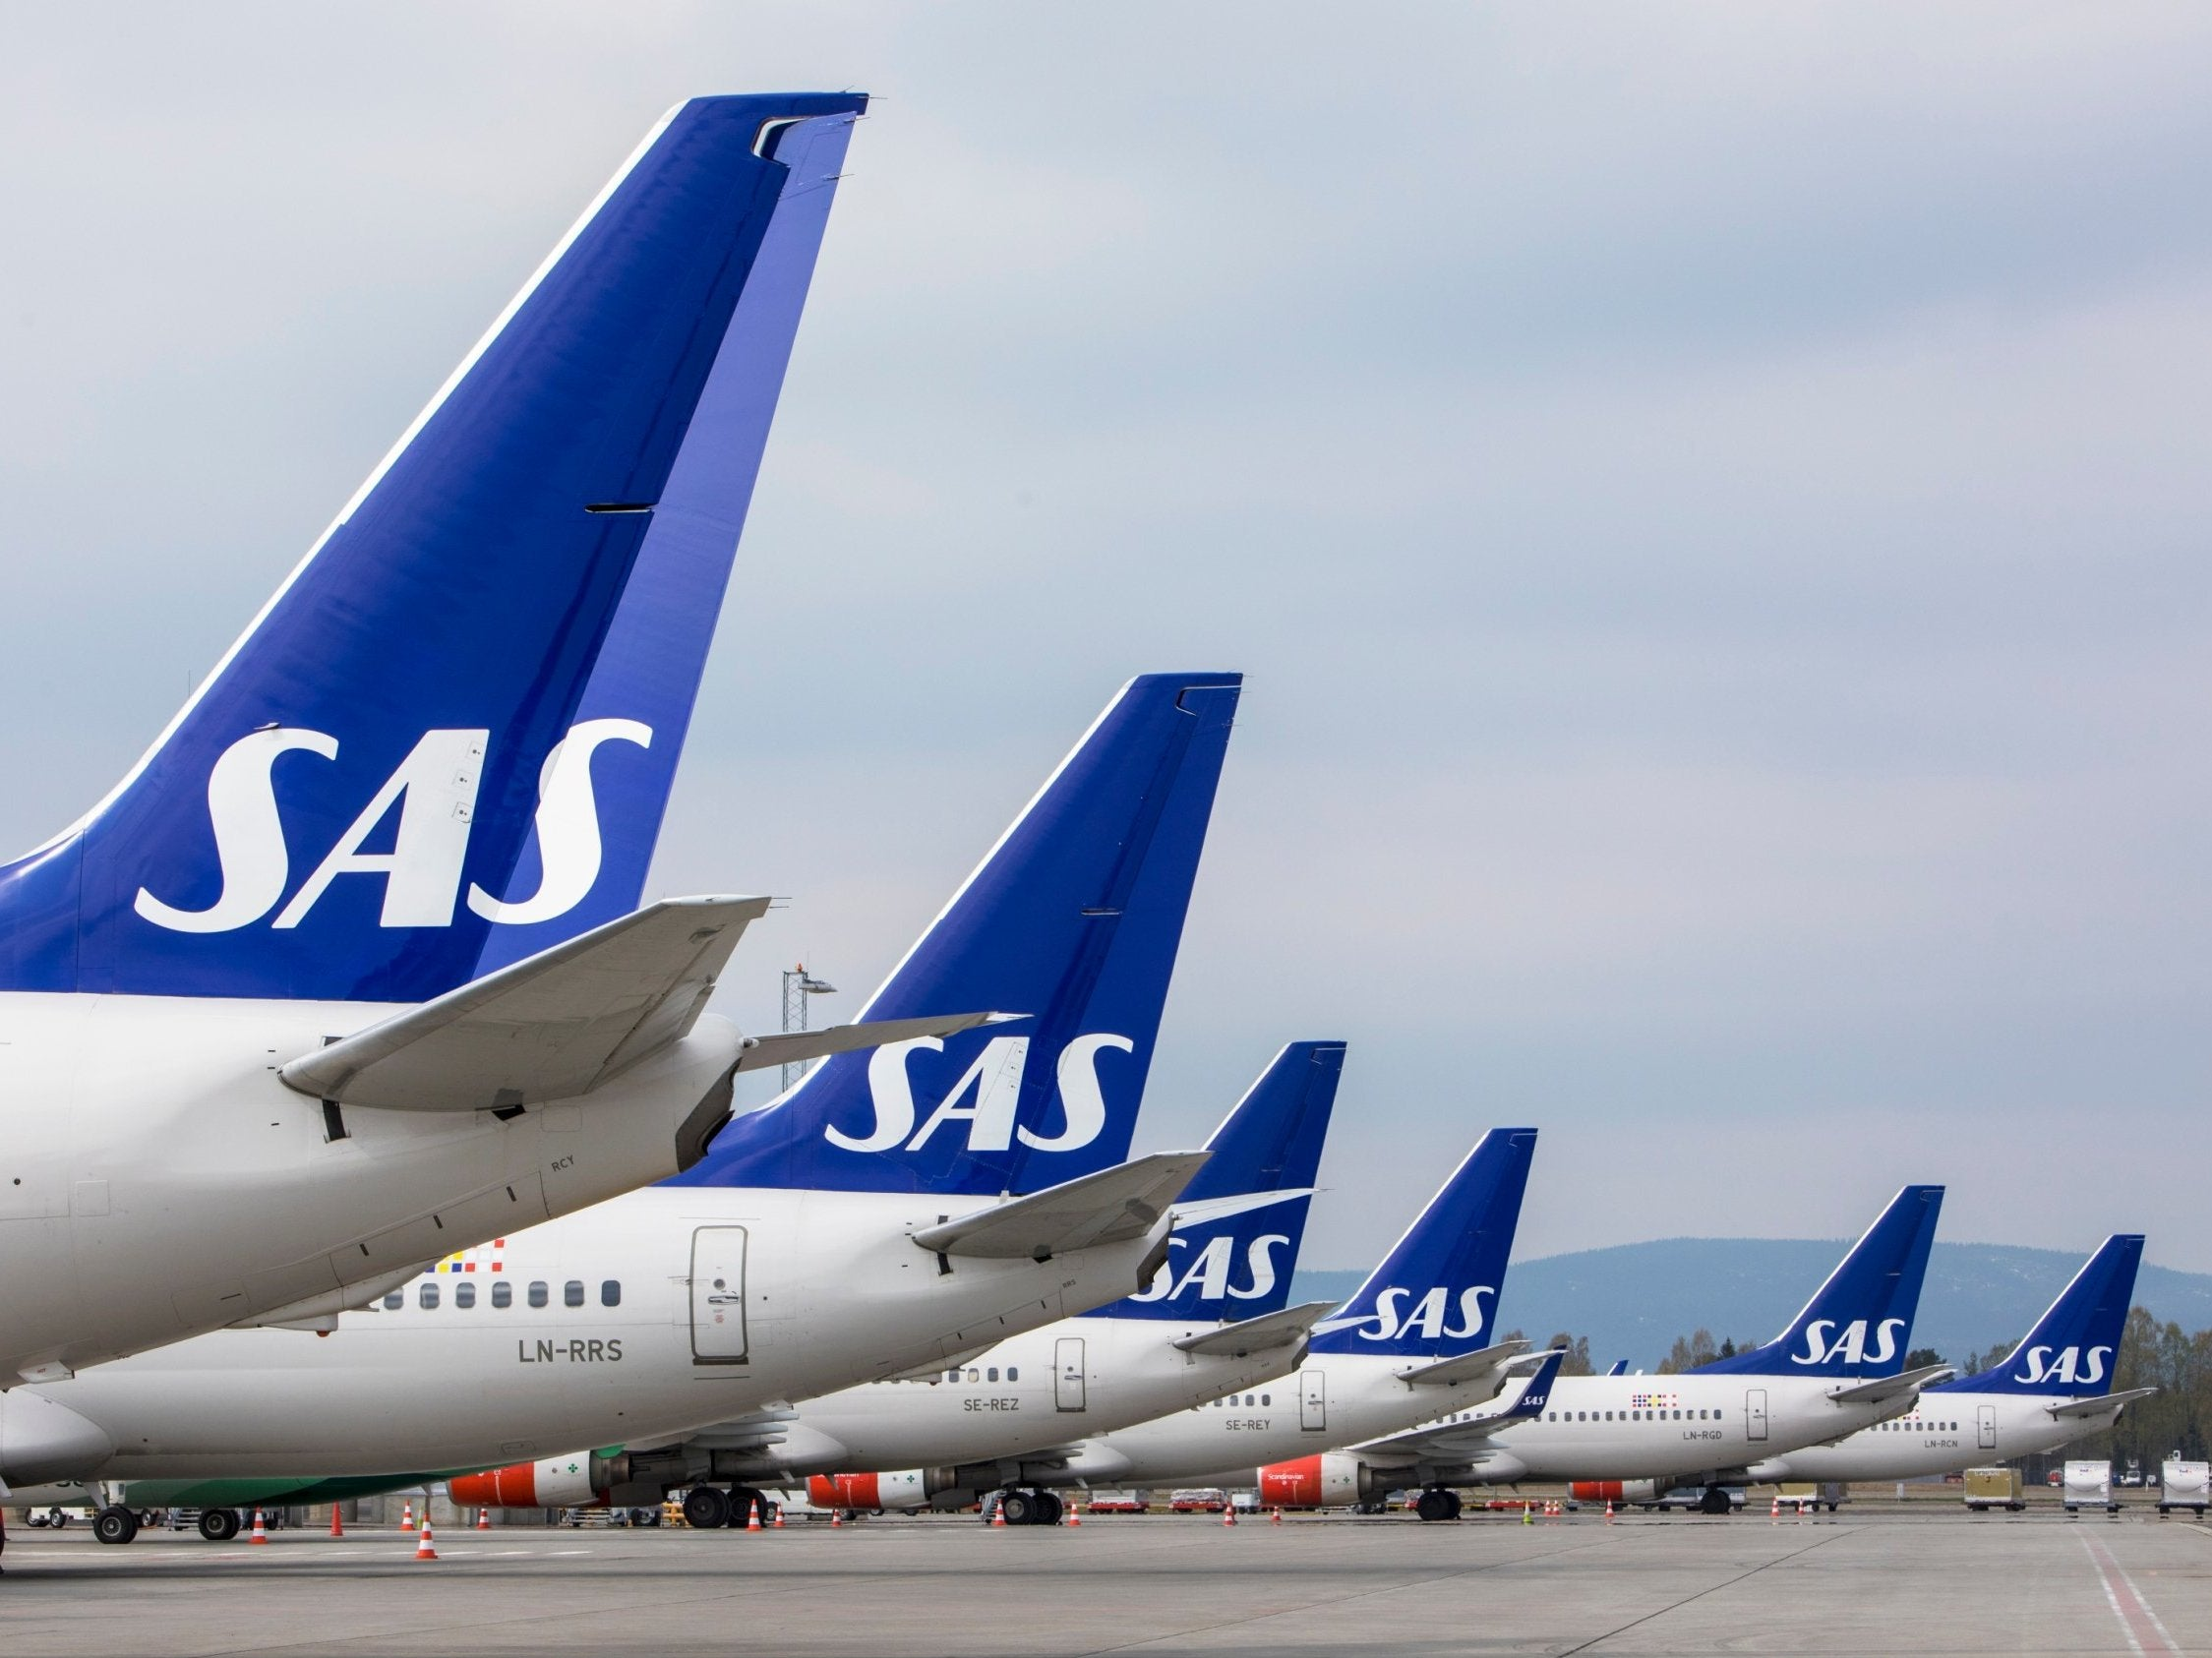 Sas Strike Hundreds More Flights Grounded As Walkout Enters Seventh Day The Independent The Independent